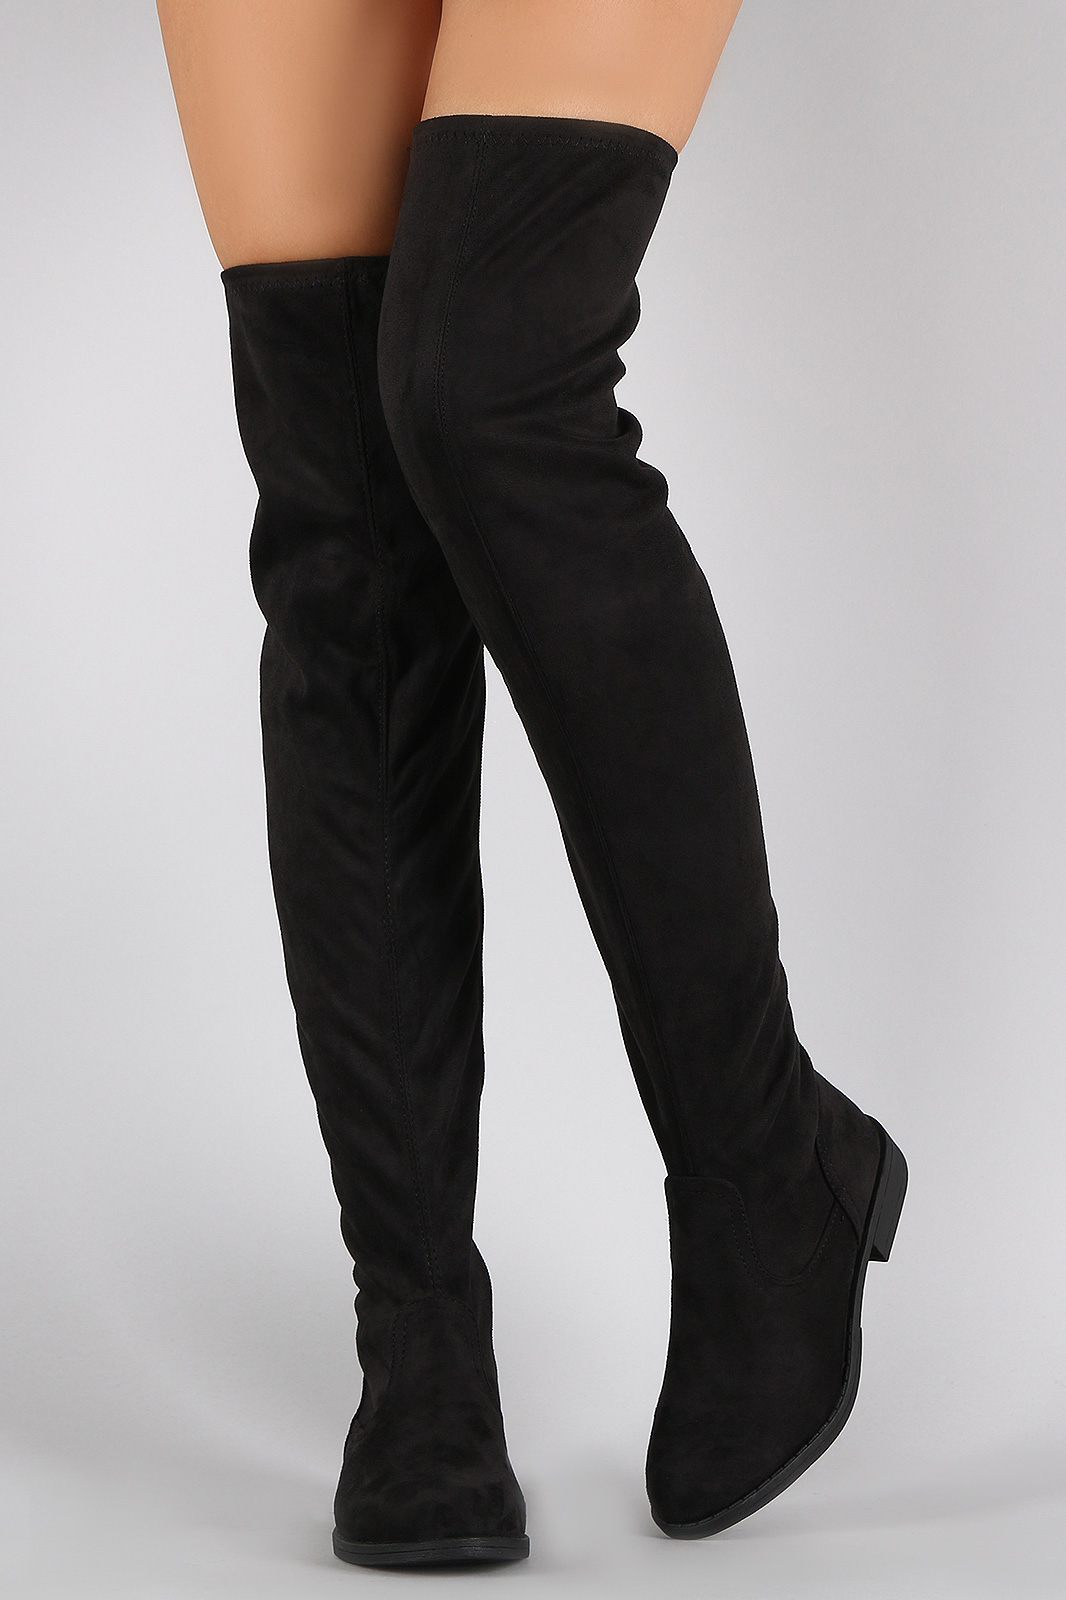 Thigh High Boots With No Heel gG4sK0S8